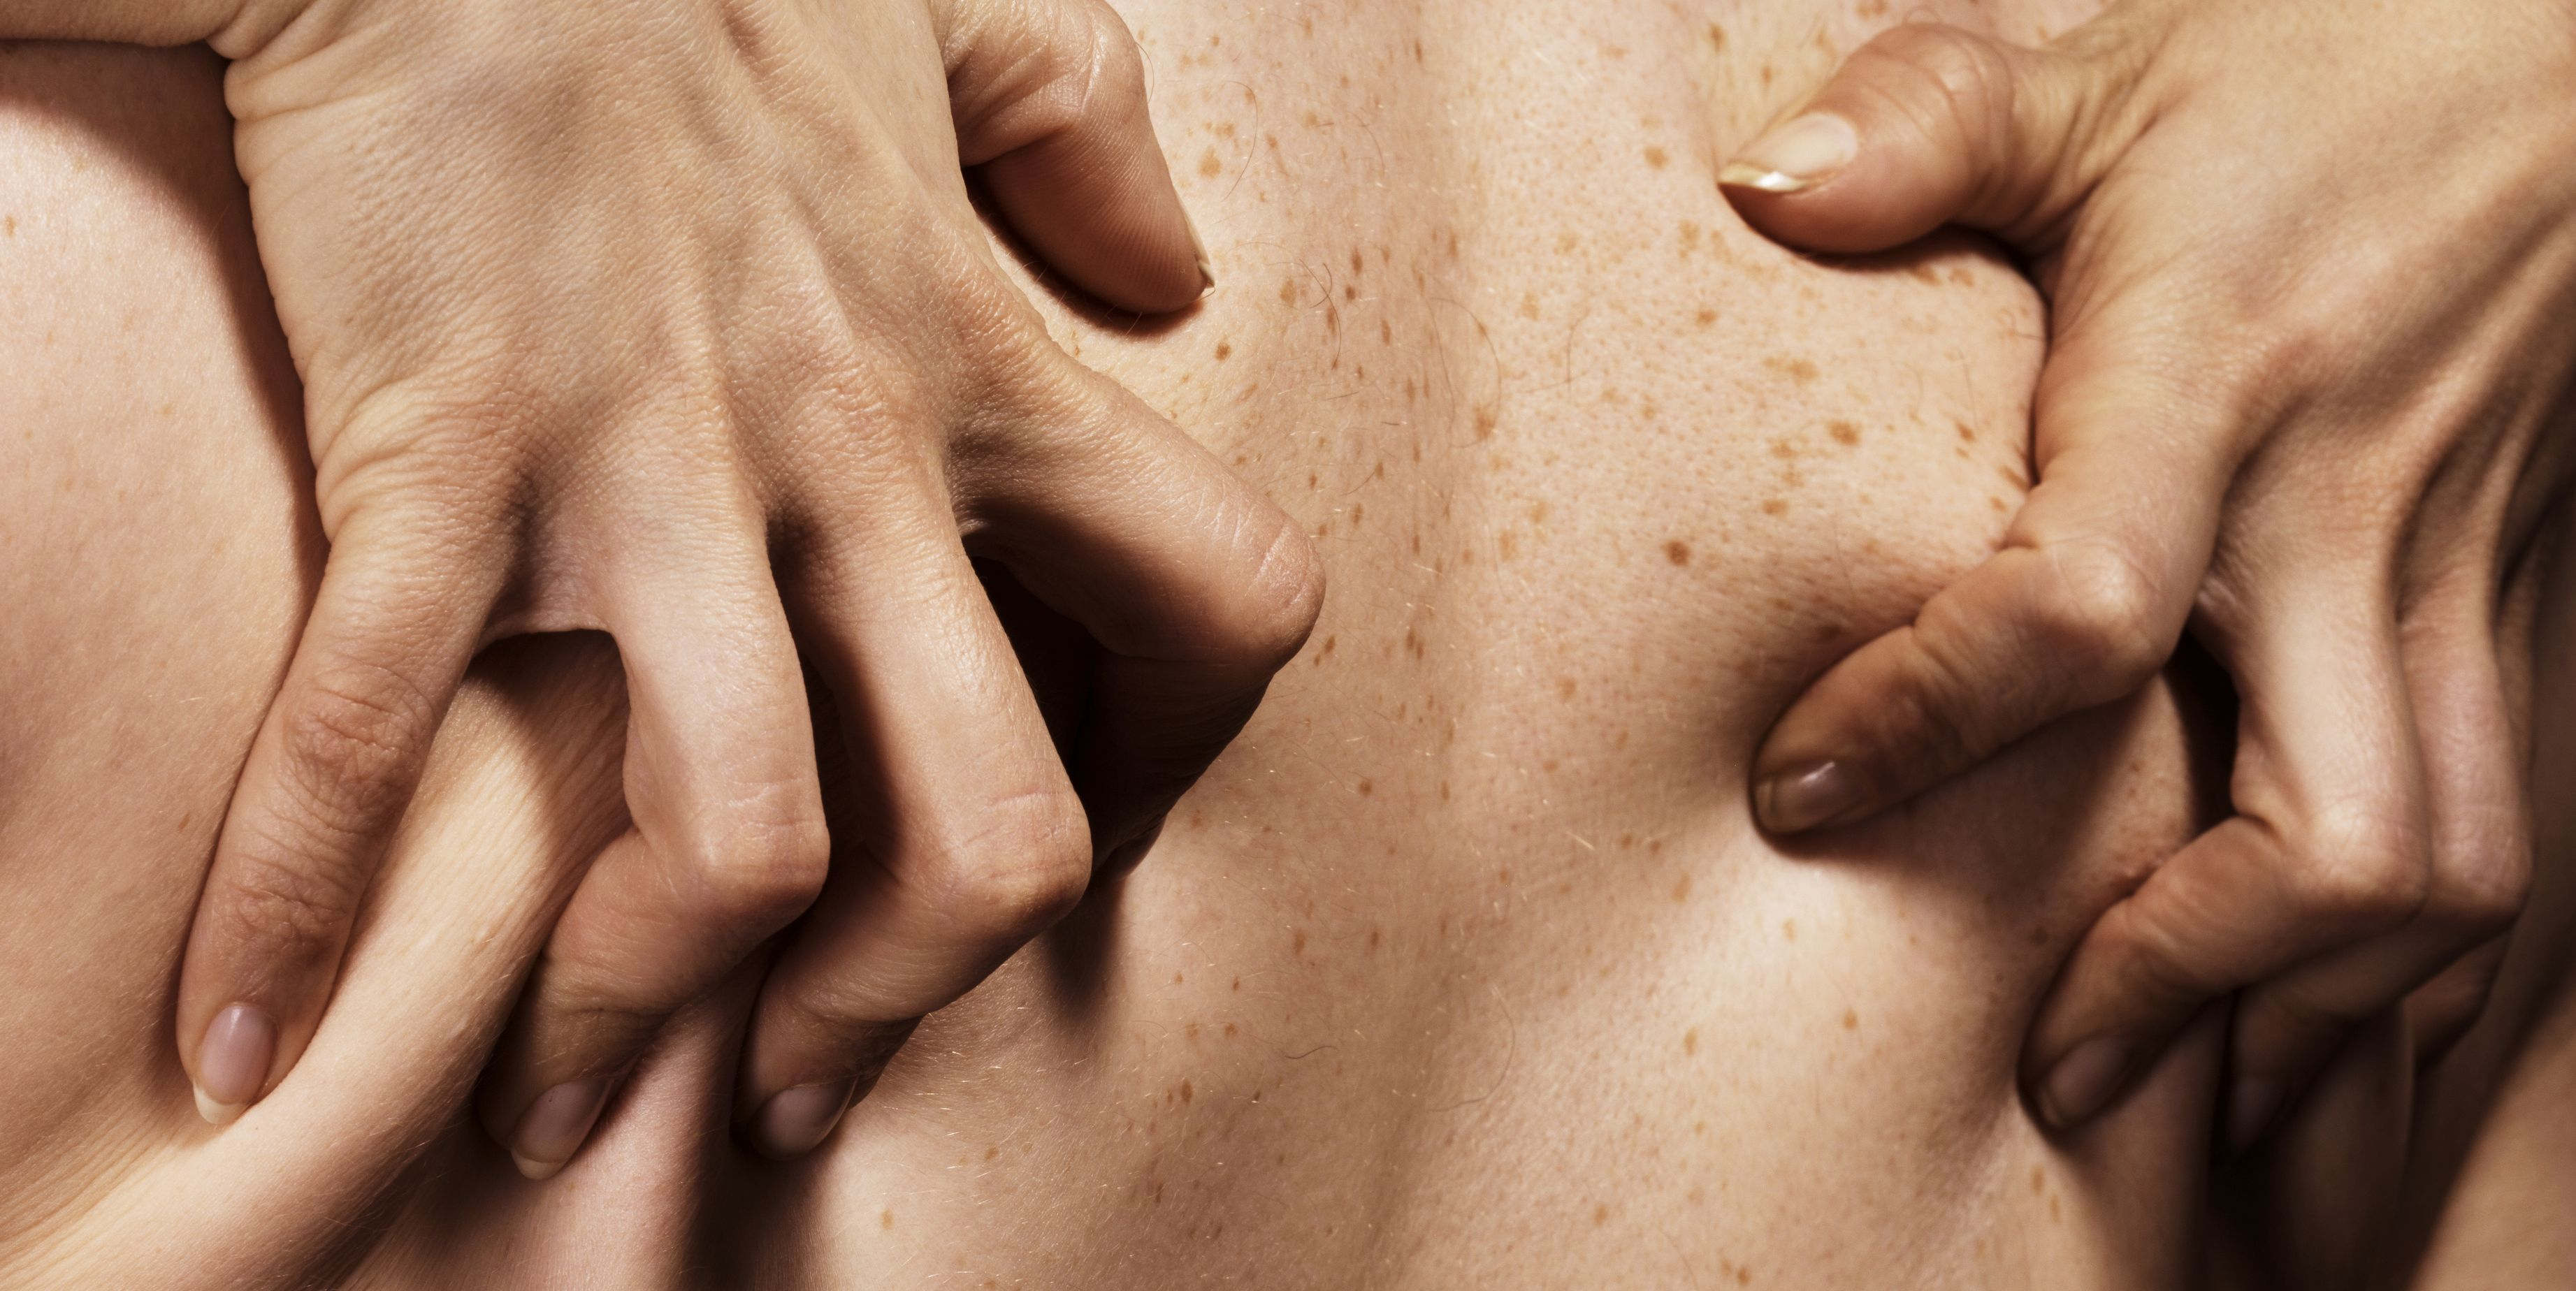 9 Common Sex Injuries—And How to Deal